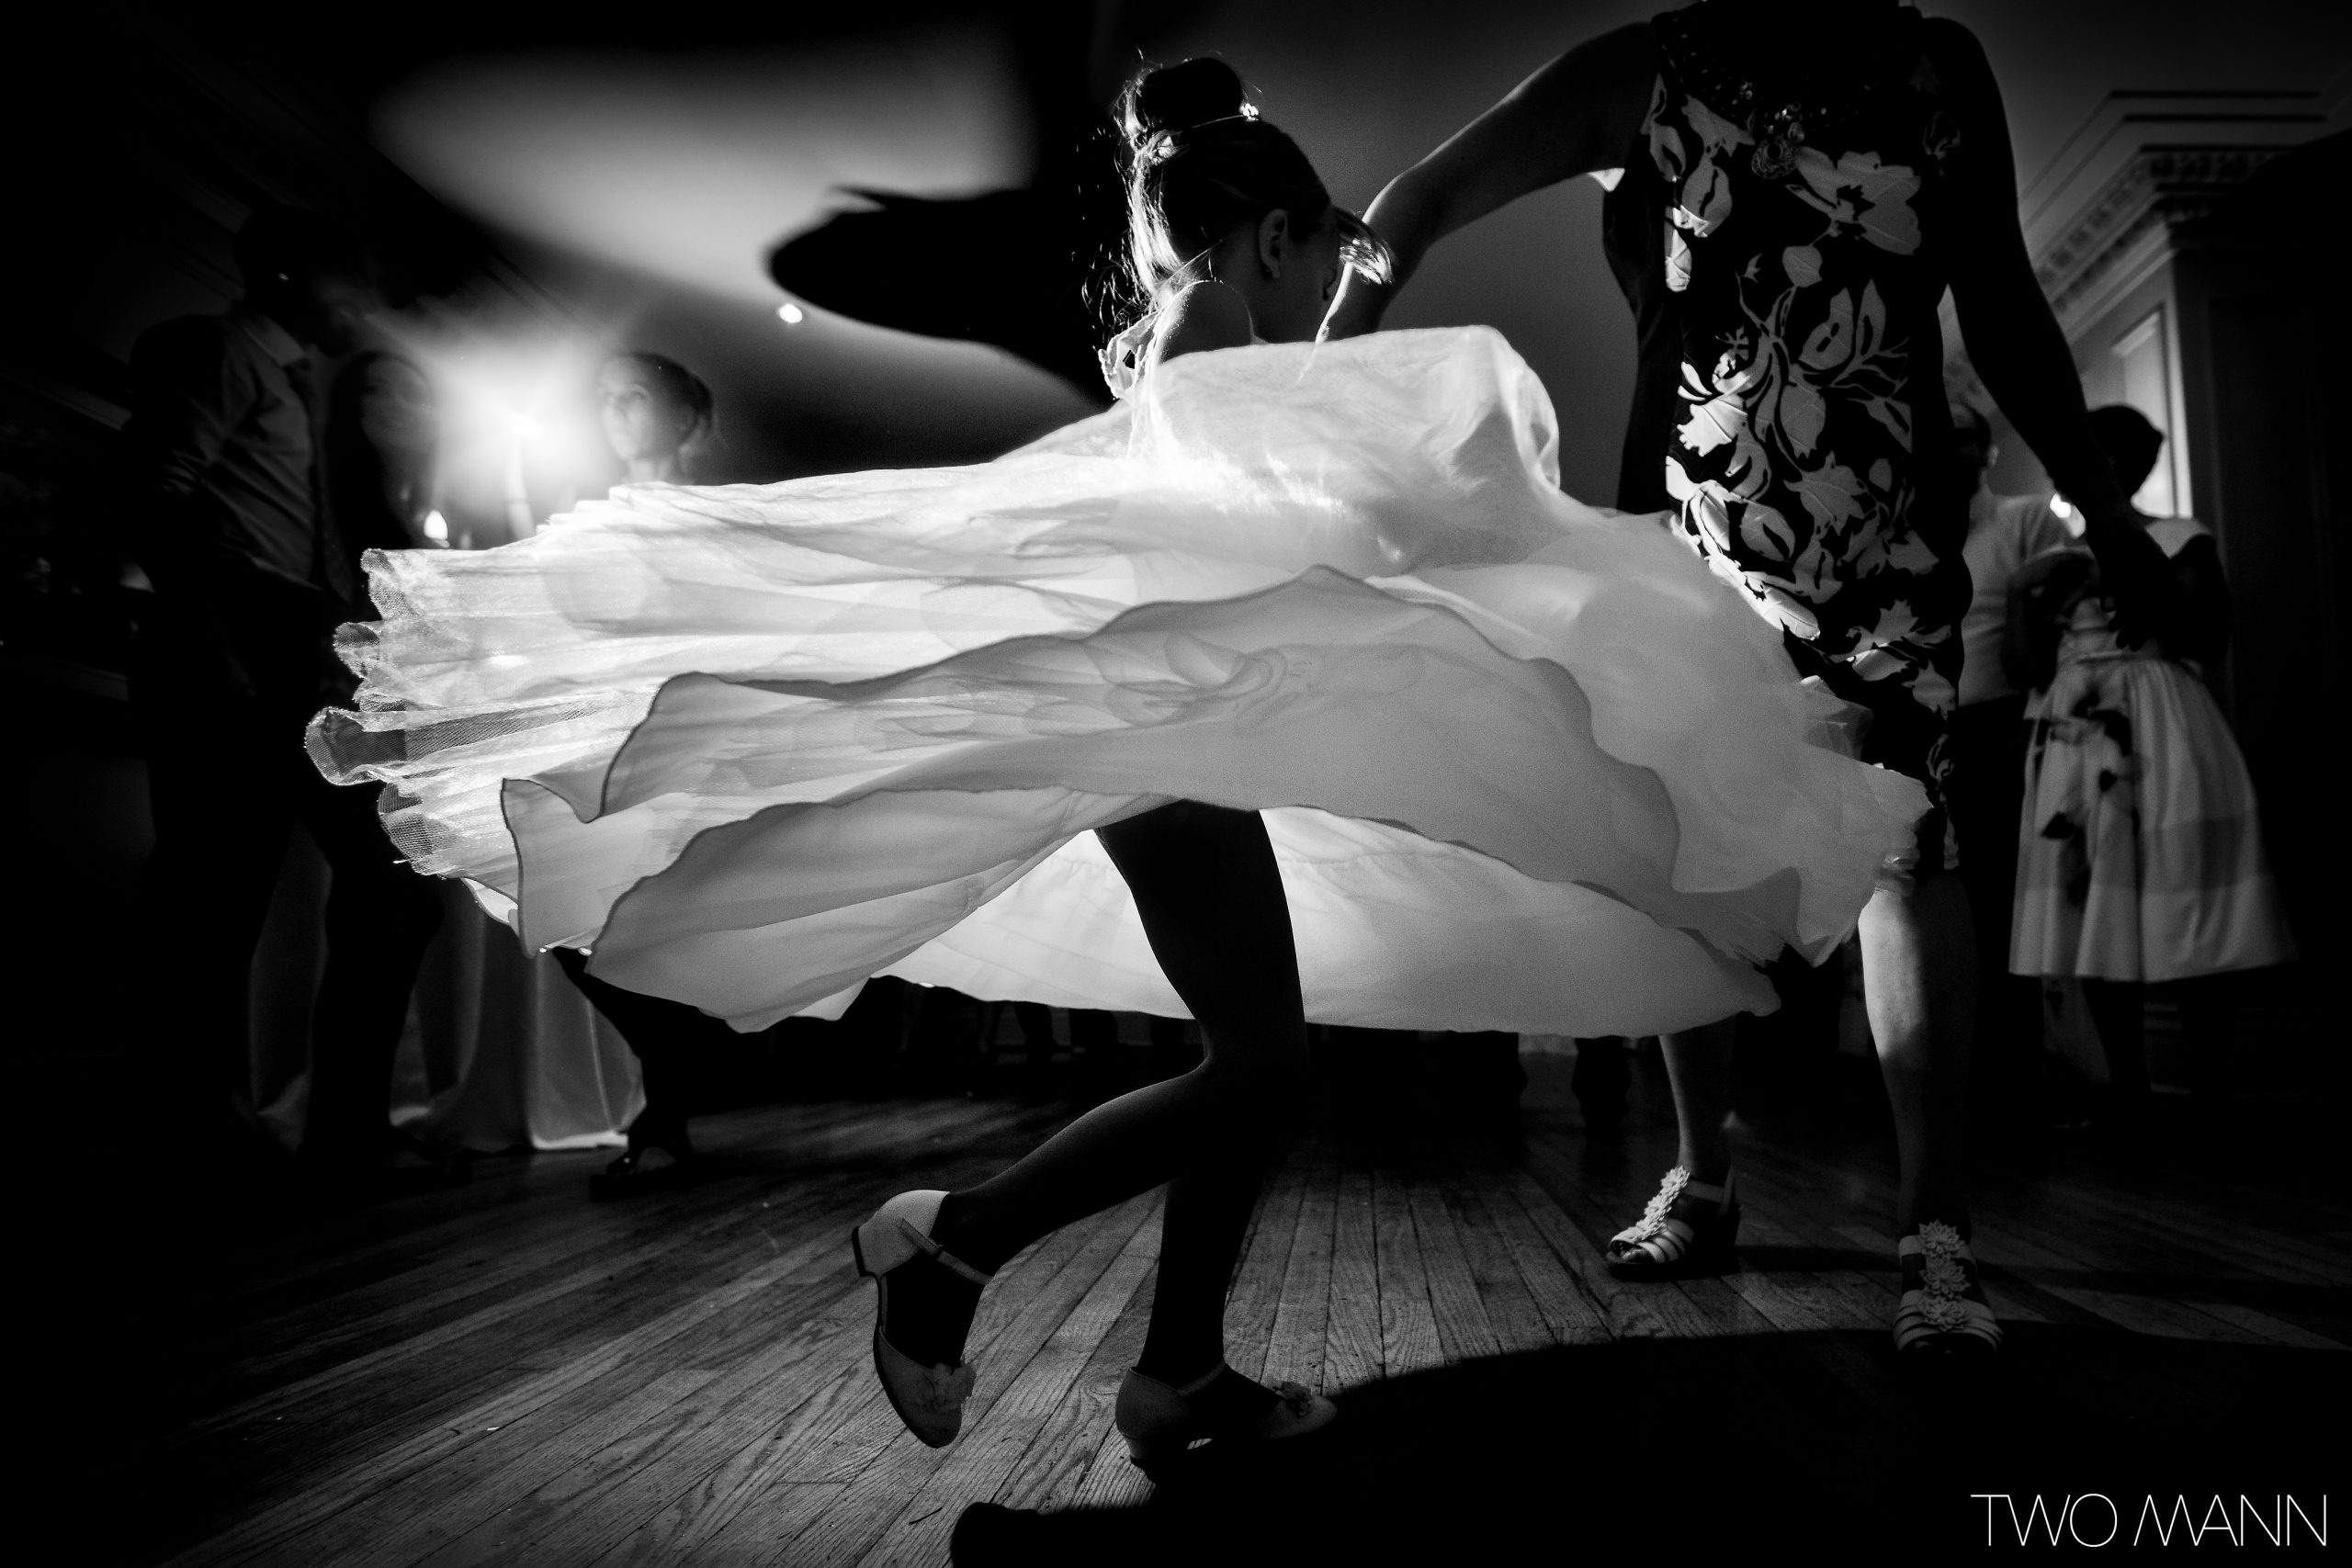 Young girl twirling on wedding dance floor in white dress